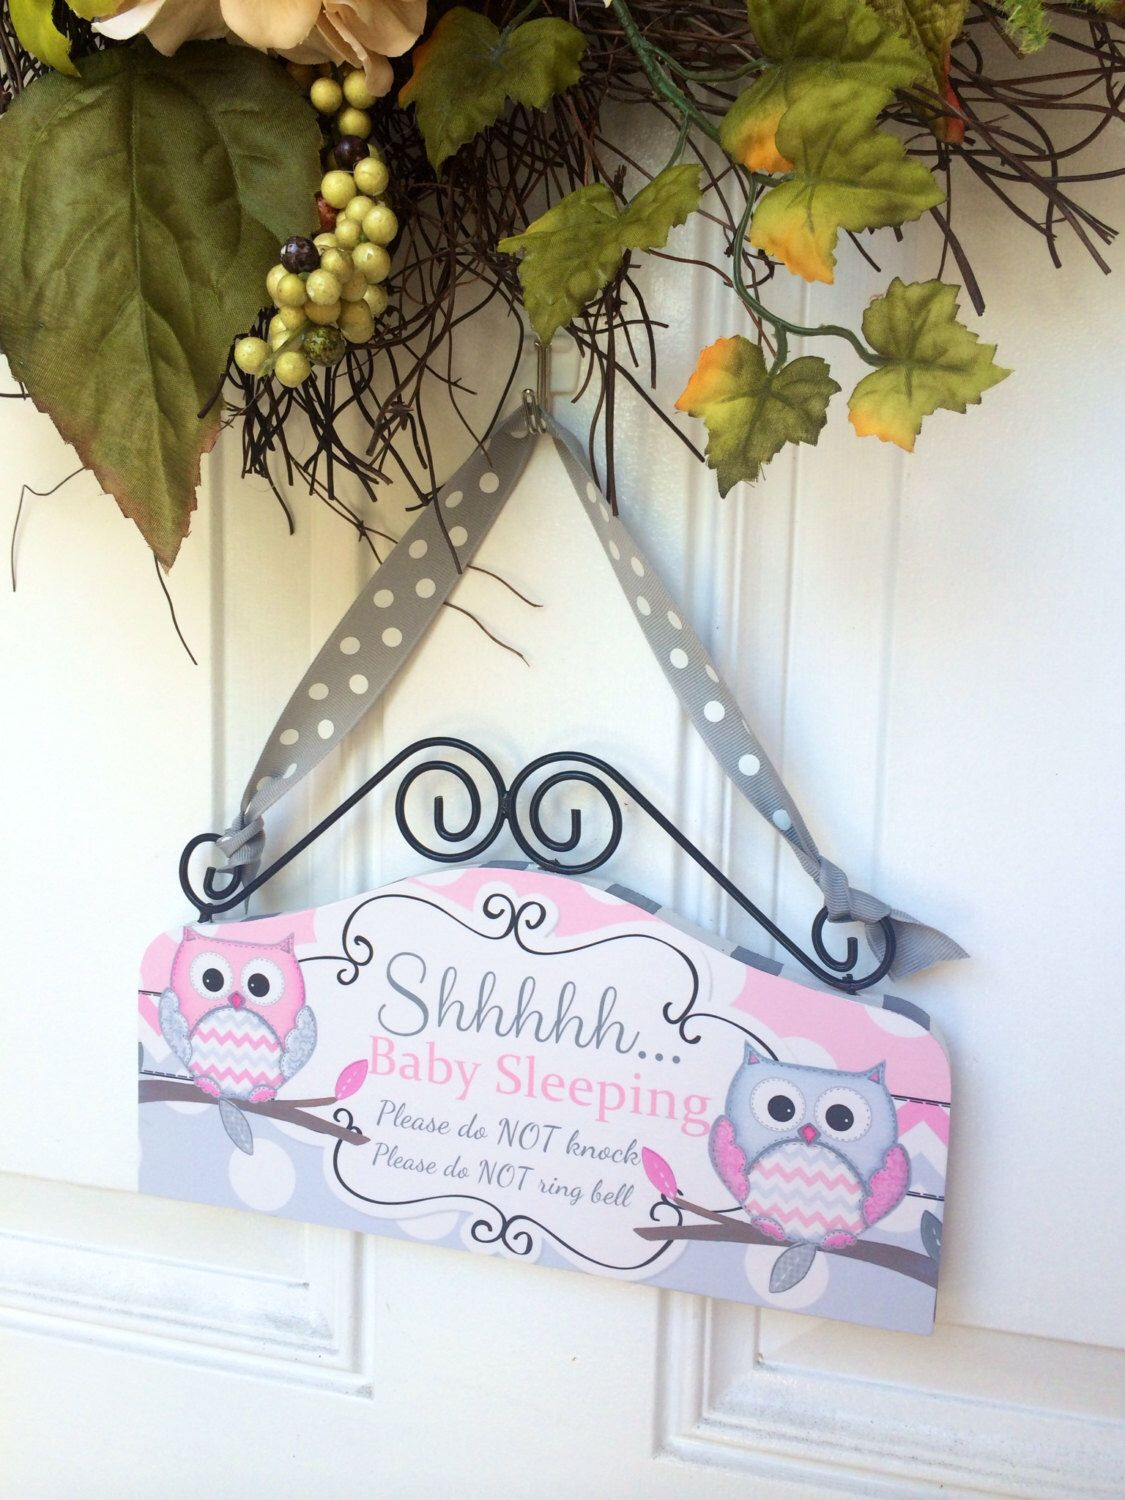 Baby Sleeping Sign Cute Owls Pink And Gray Door Sign Shhh Baby